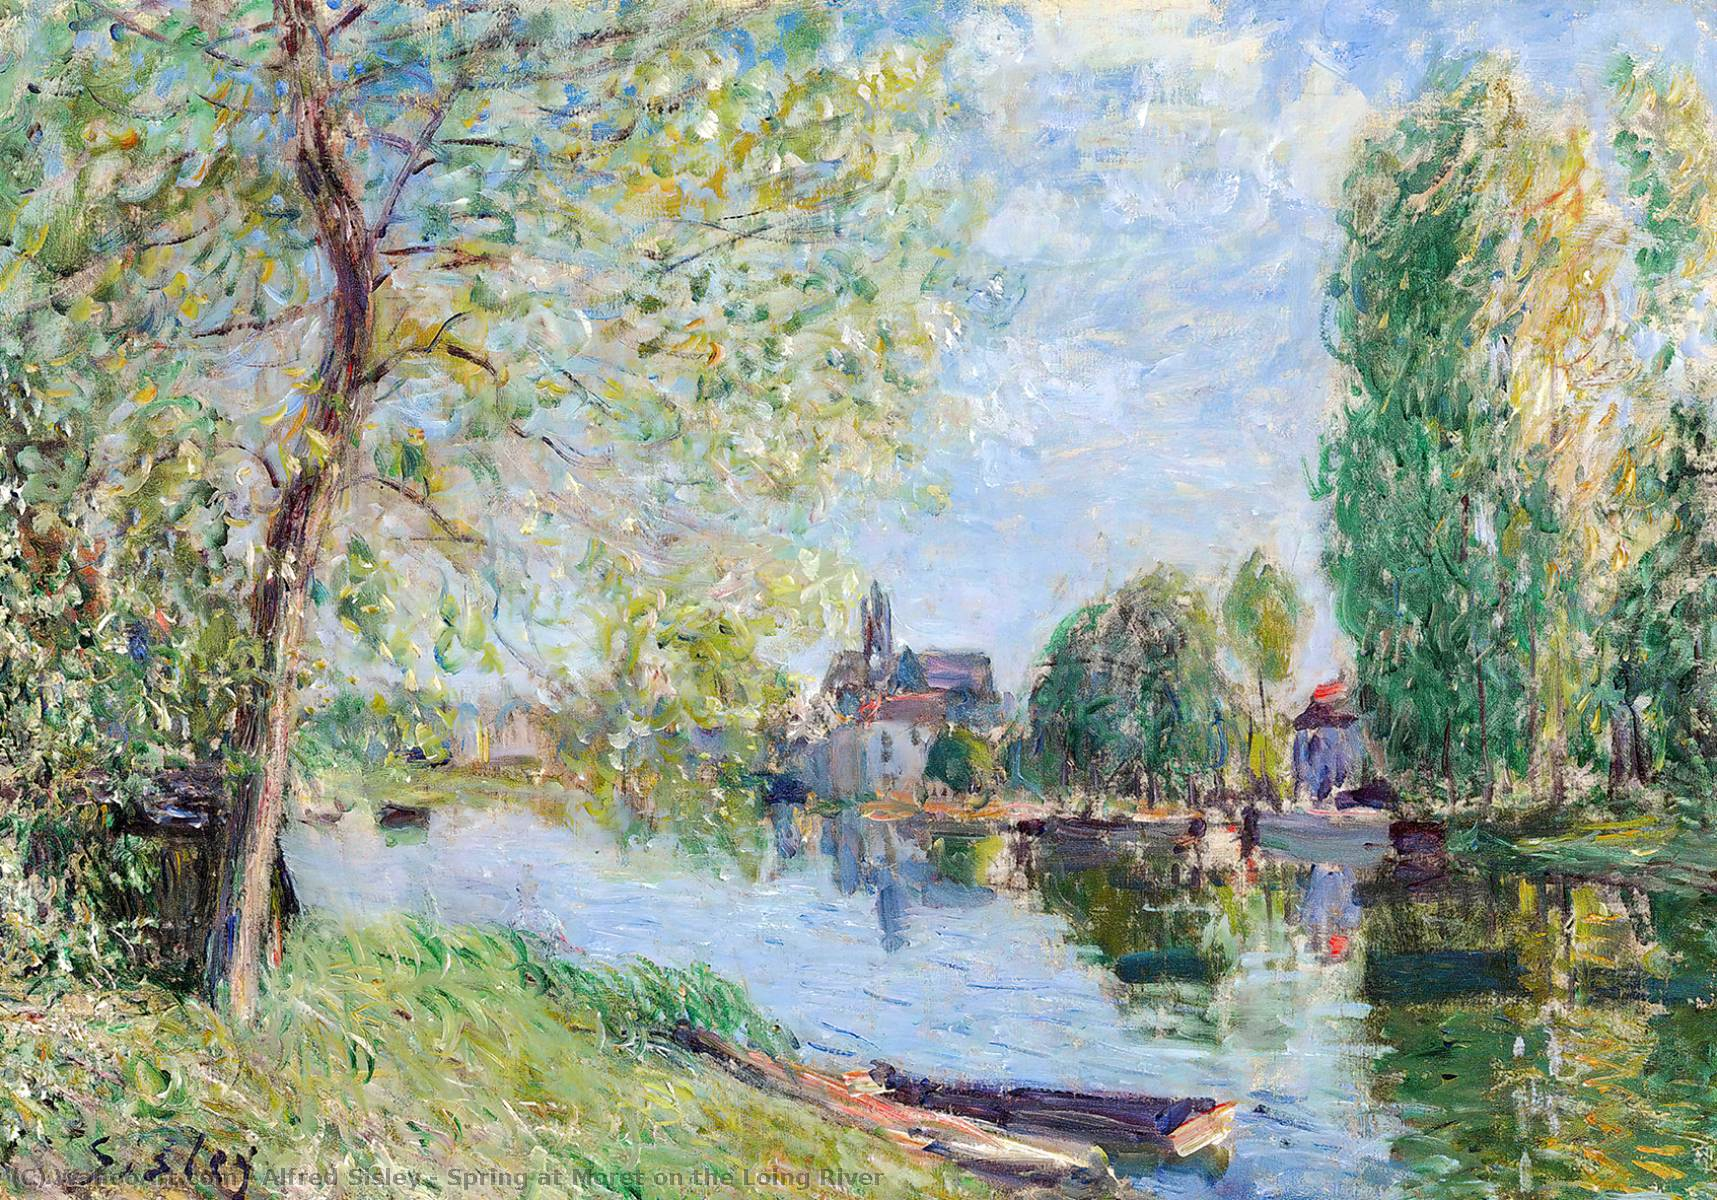 Spring at Moret on the Loing River, Oil On Canvas by Alfred Sisley (1839-1899, France)